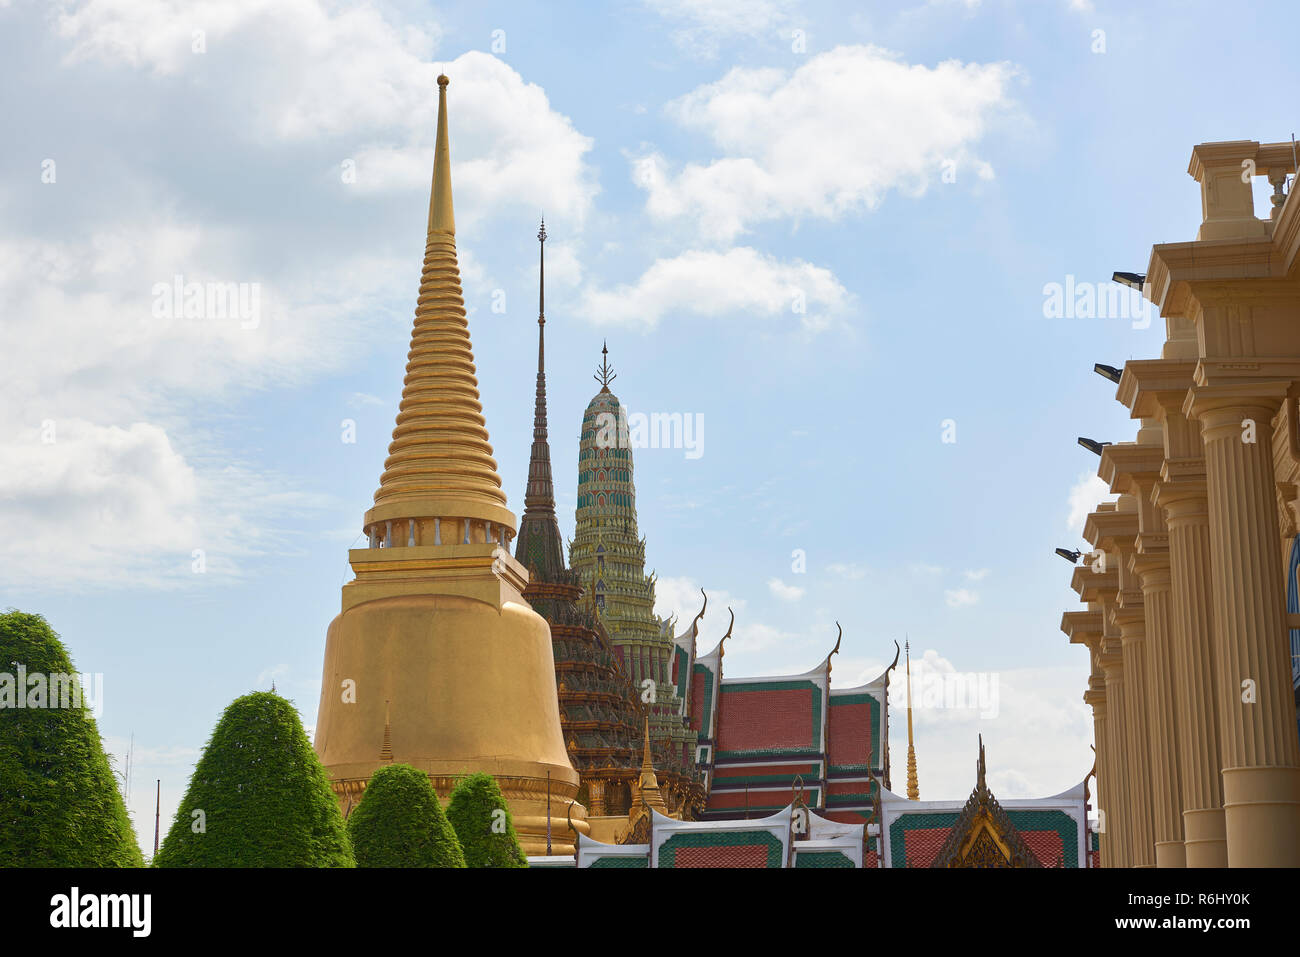 Three large pagodas inside the Grand Palace in Bangkok, Thailand. Stock Photo